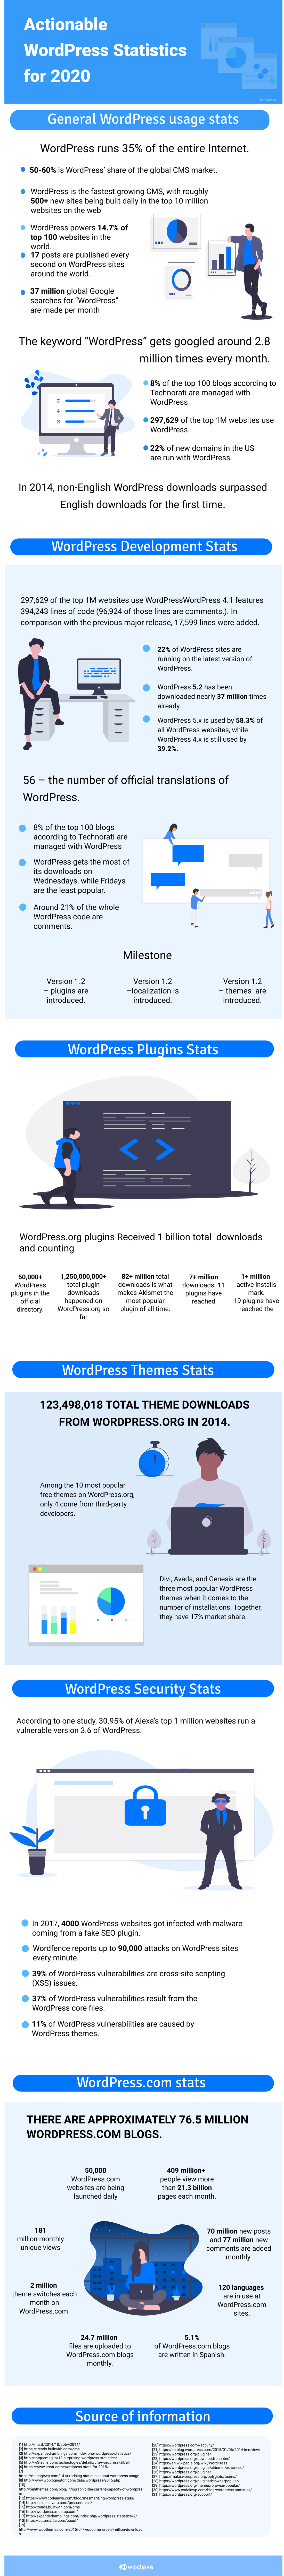 wordpress stats and facts